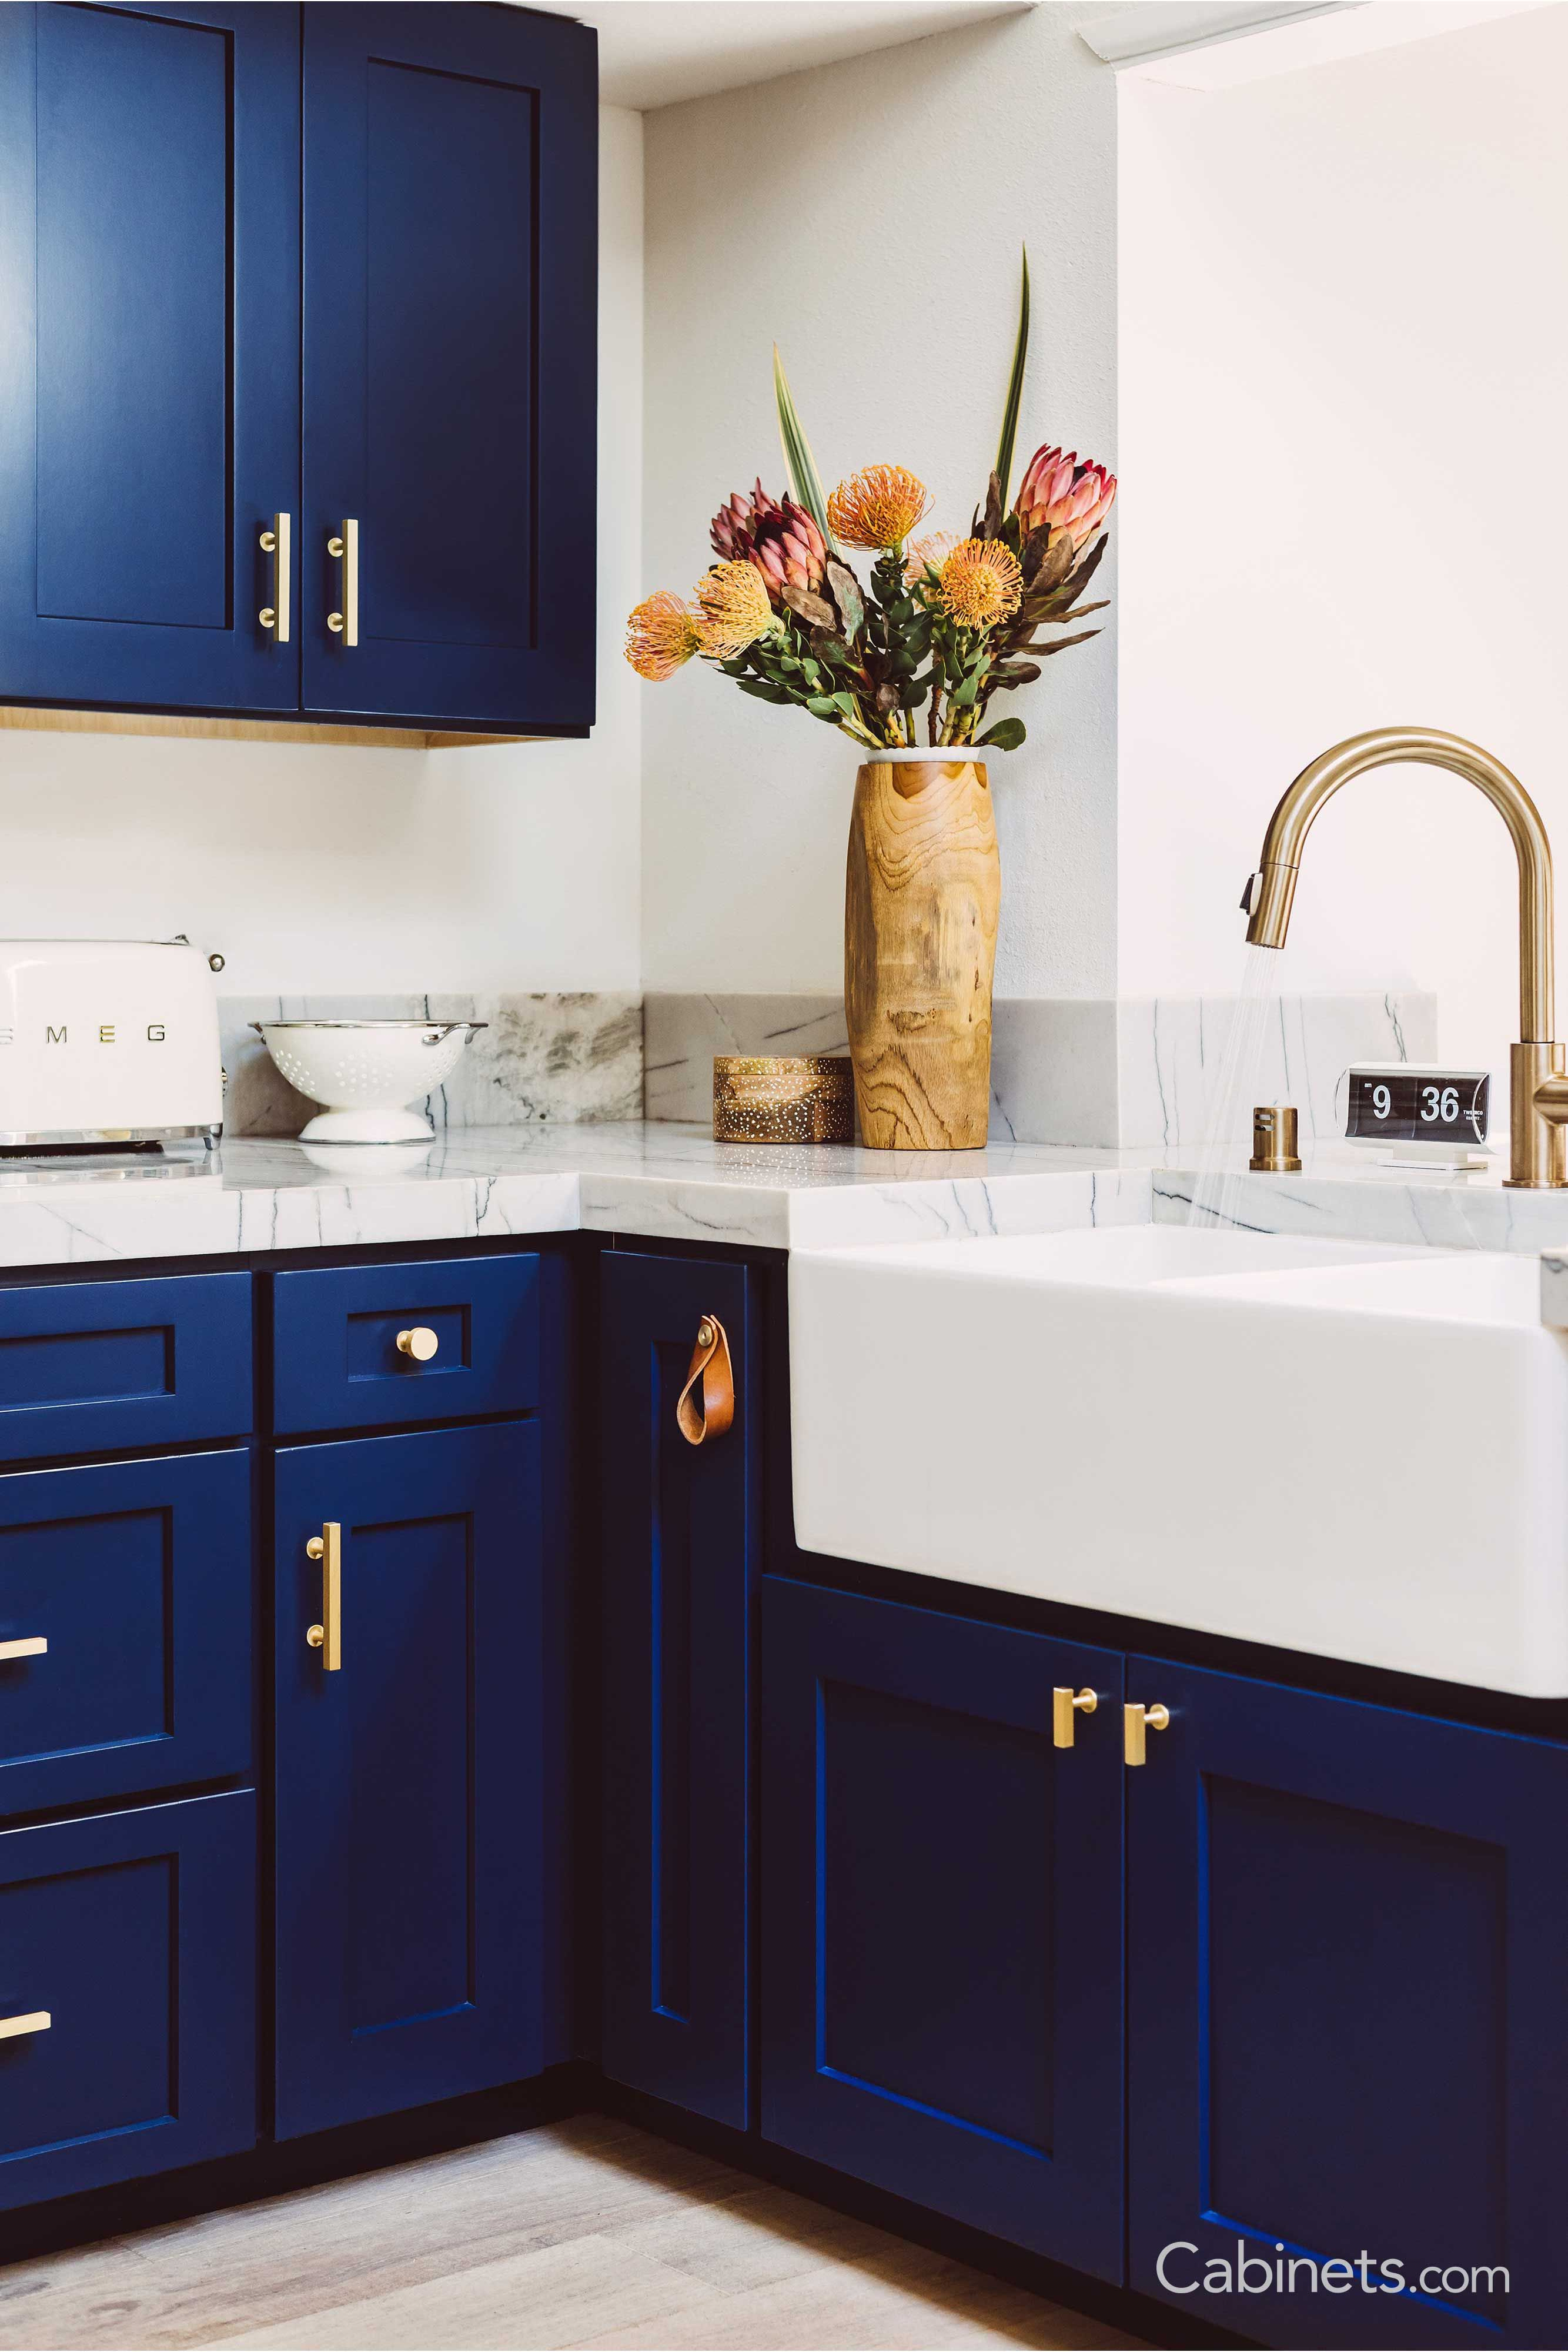 Naval Cabinets And Gold Hardware What Kitchen Dreams Are Made Of Blue Kitchen Decor Diy Kitchen Renovation Navy Kitchen Cabinets